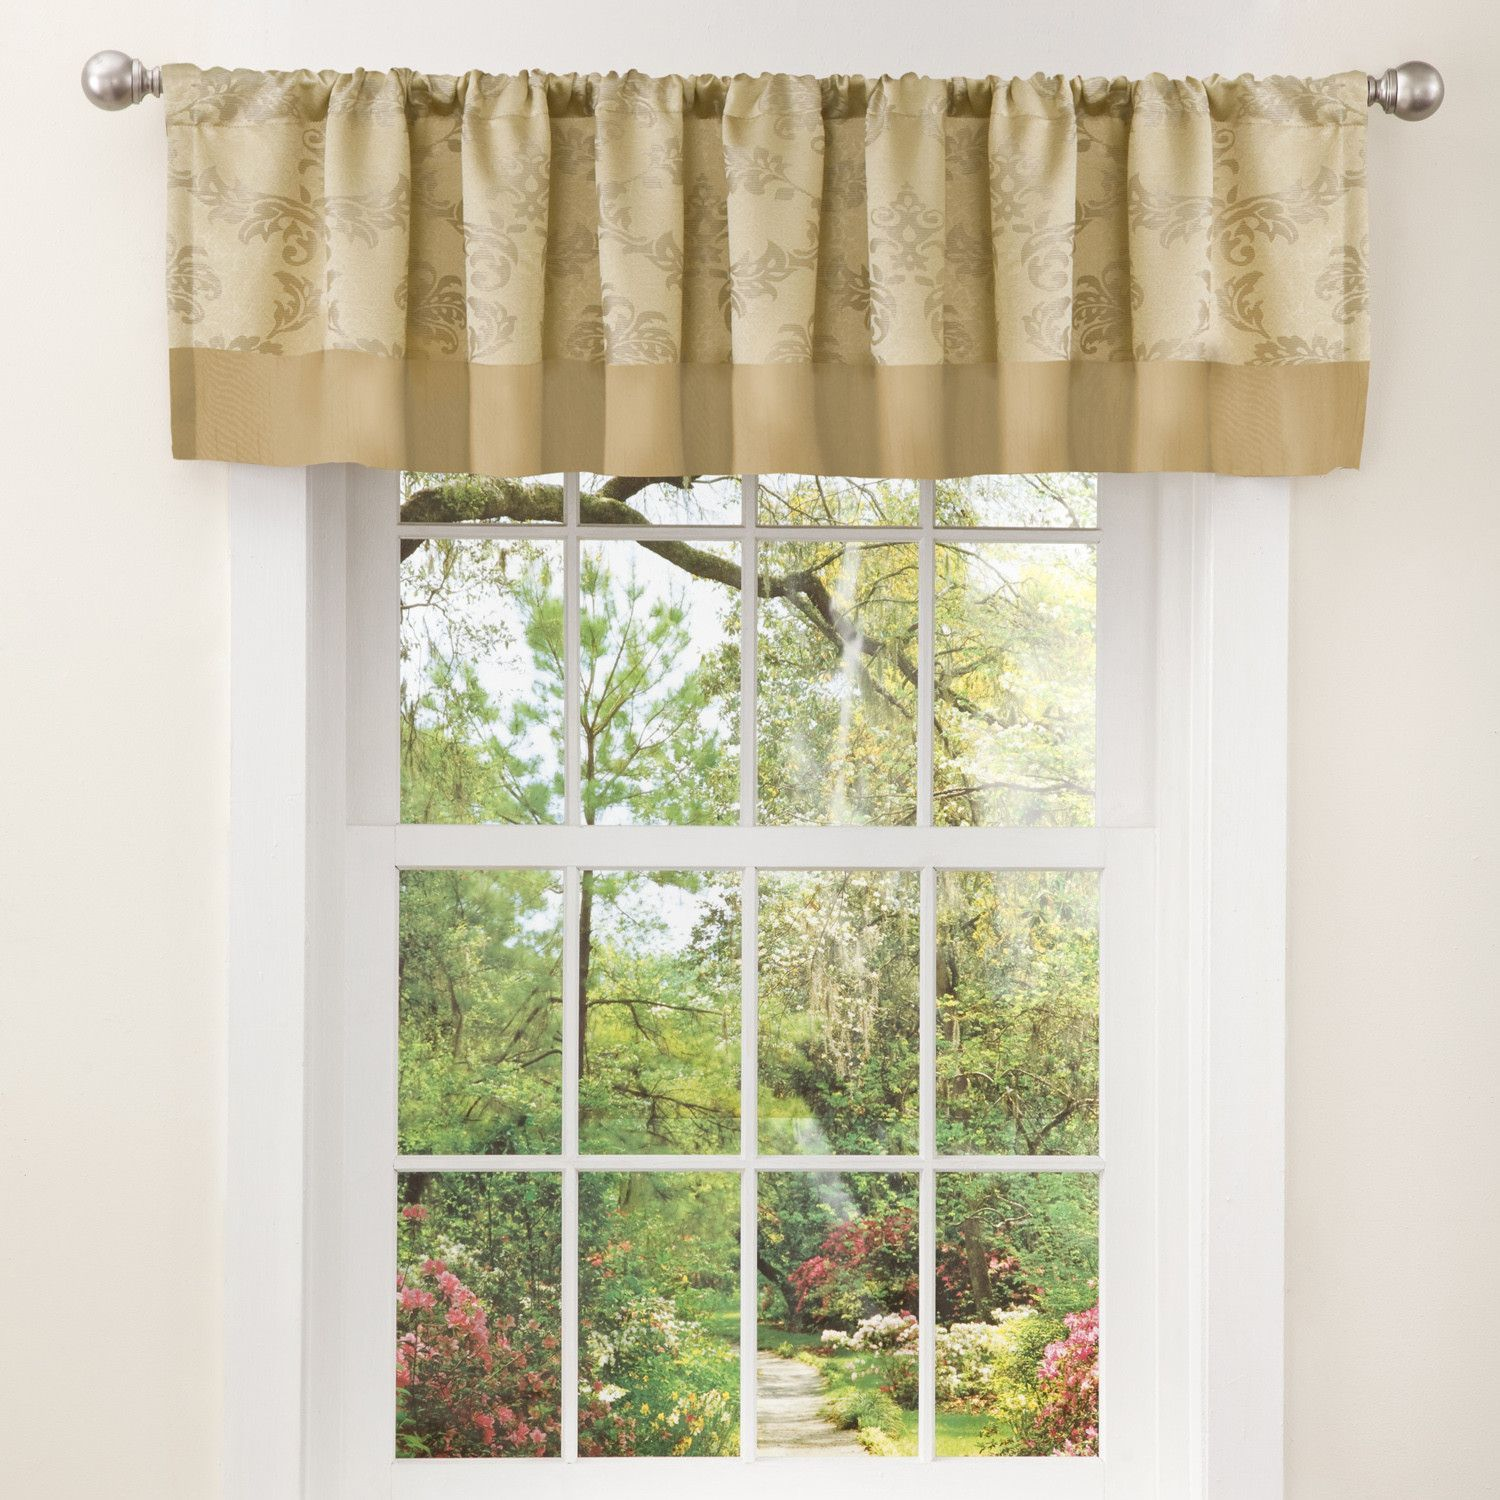 Dorchester window curtain window curtains and products